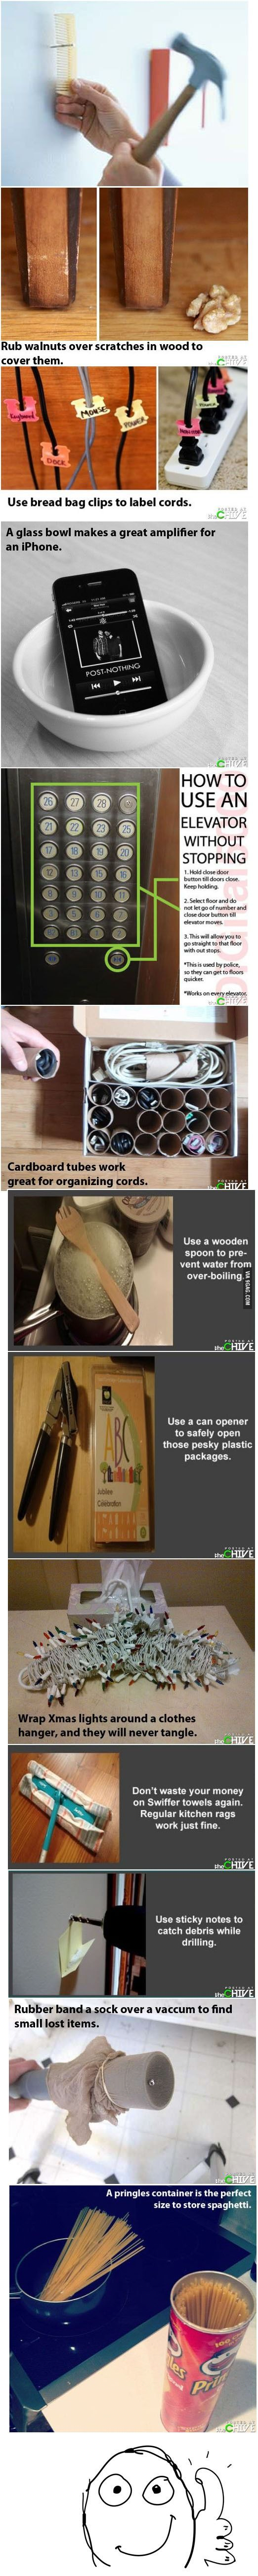 Organization tips. Love the bread clips to label cords!